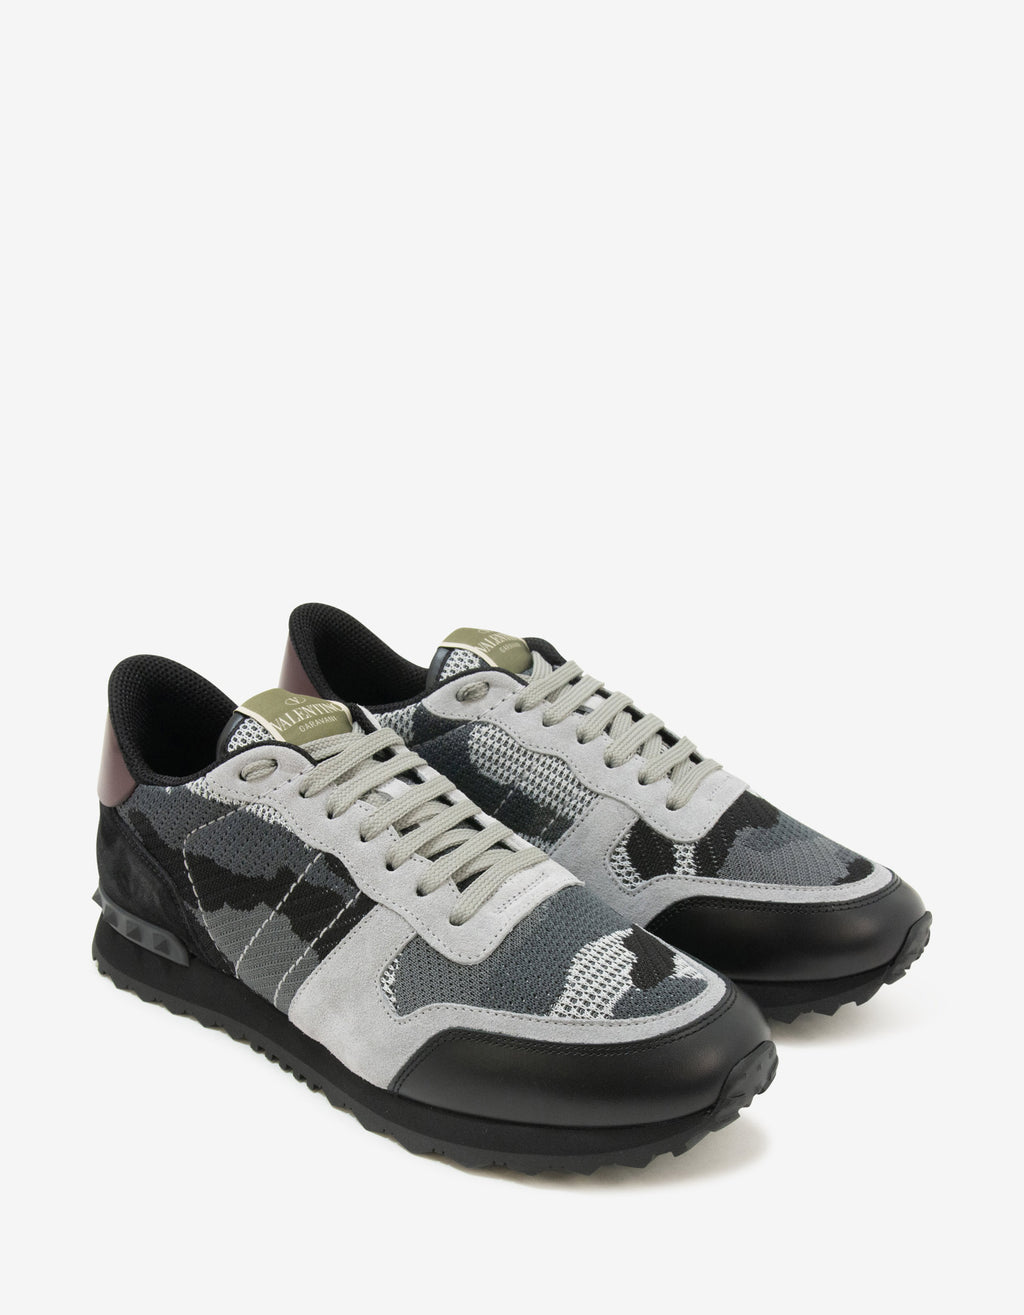 Grey Mesh Camouflage Rockrunner Trainers